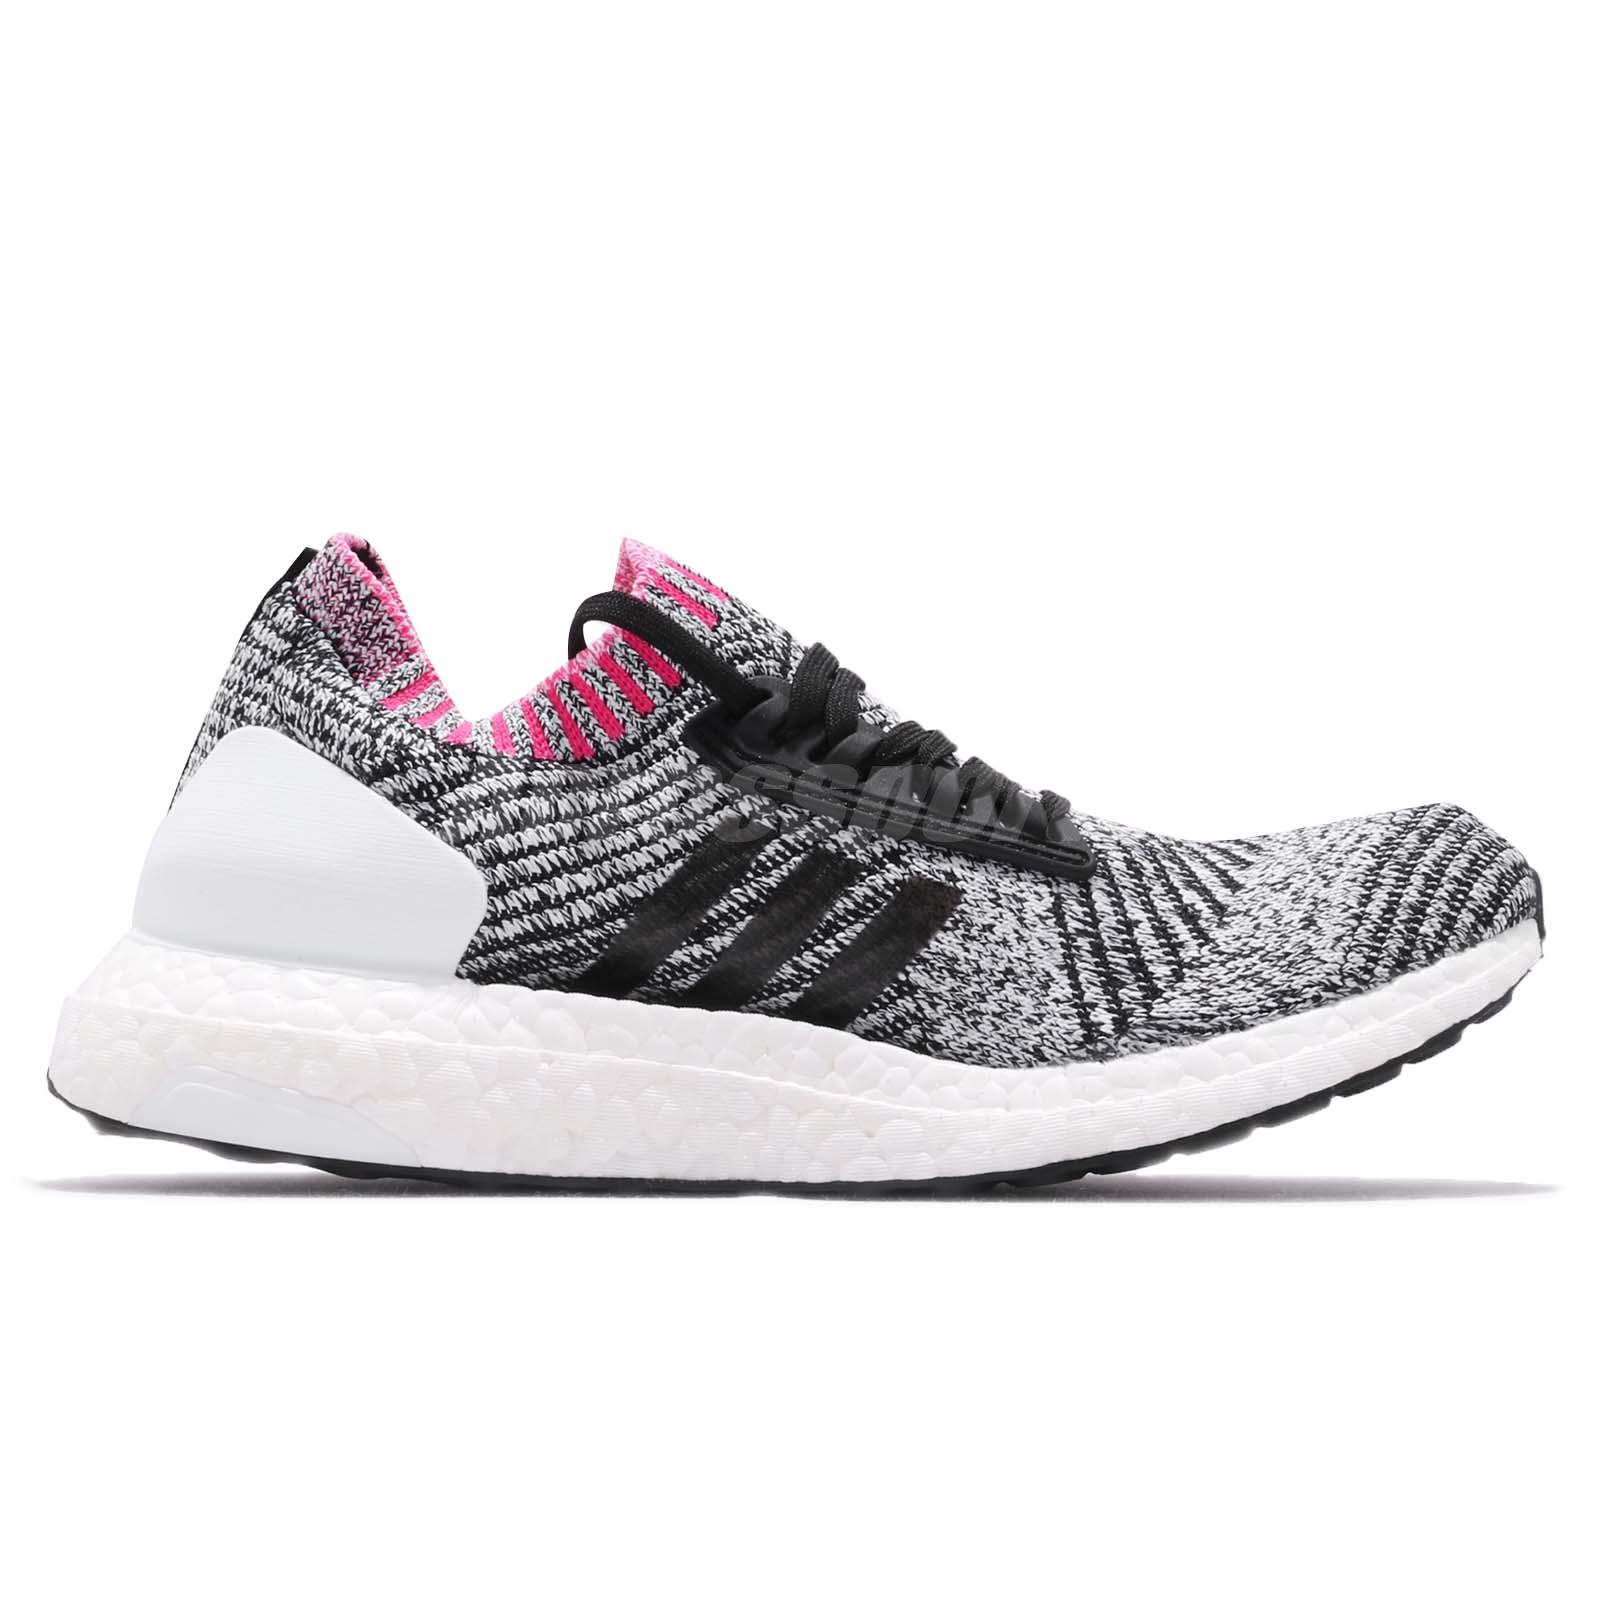 Details about adidas UltraBOOST X White Black Shock Pink Women Running Shoes Sneakers BB6524